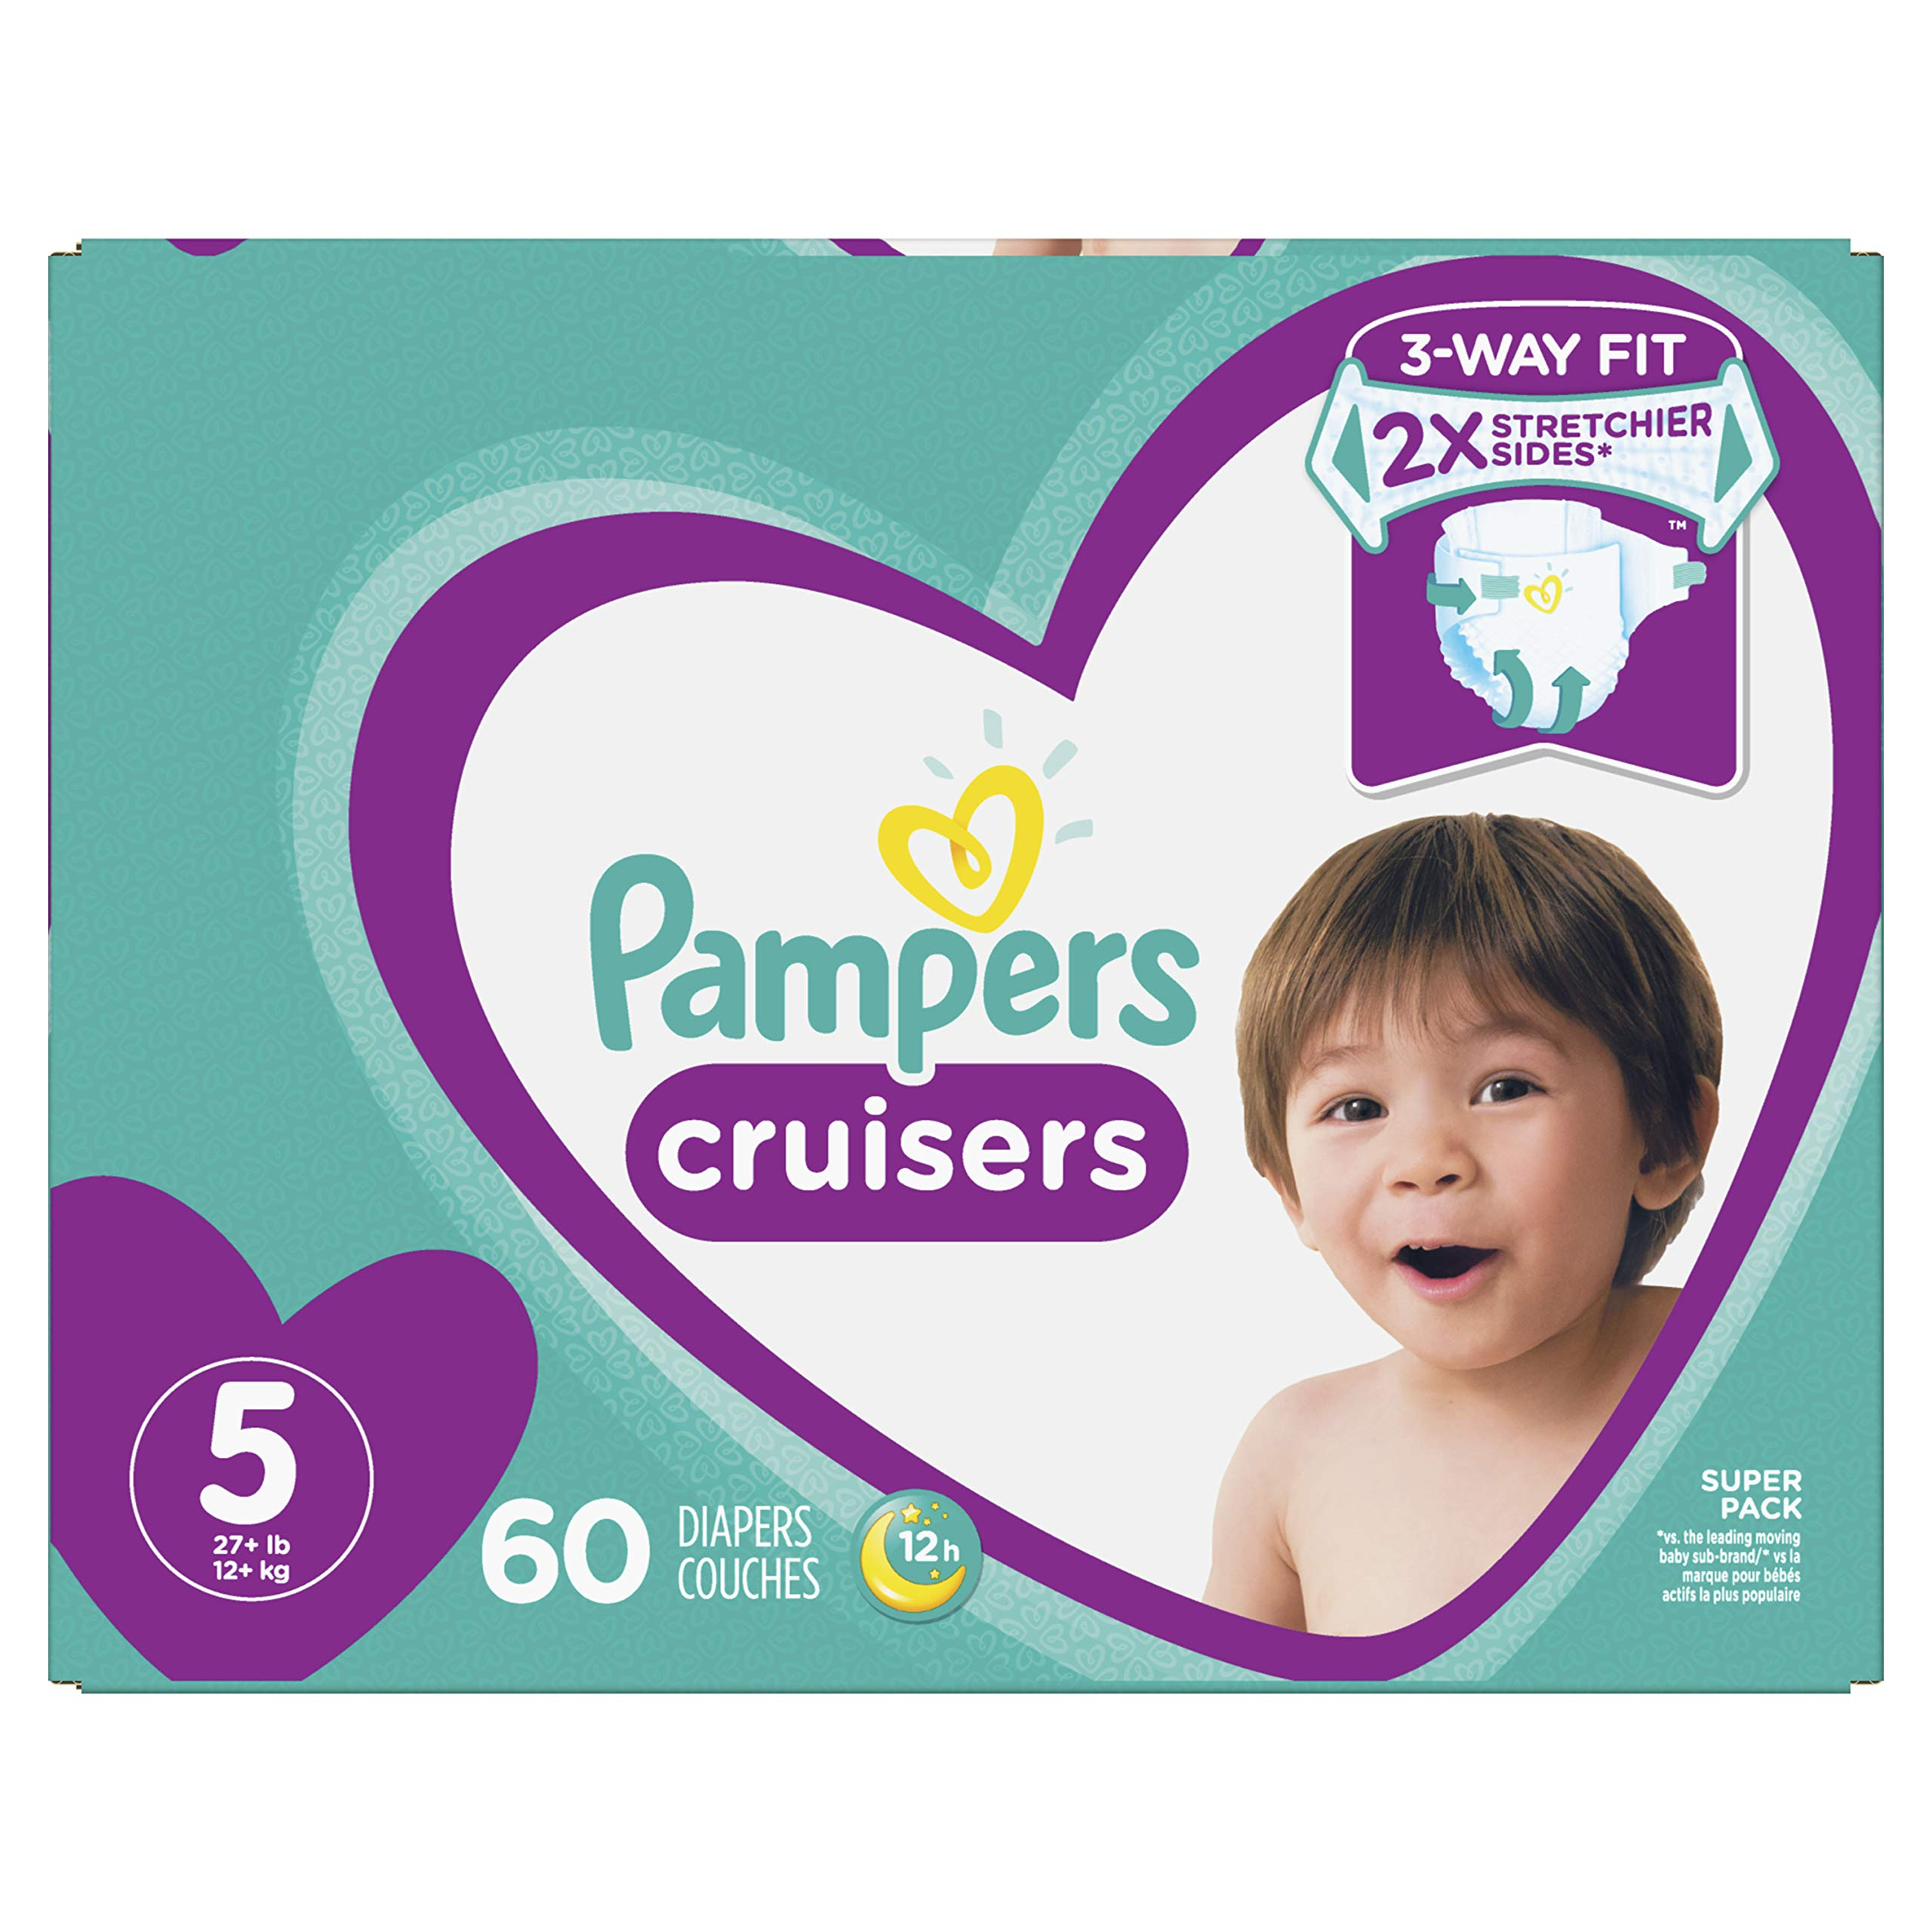 Diapers Size 5, 60 Count - Pampers Cruisers Disposable Baby Diapers, Super Pack by Pampers